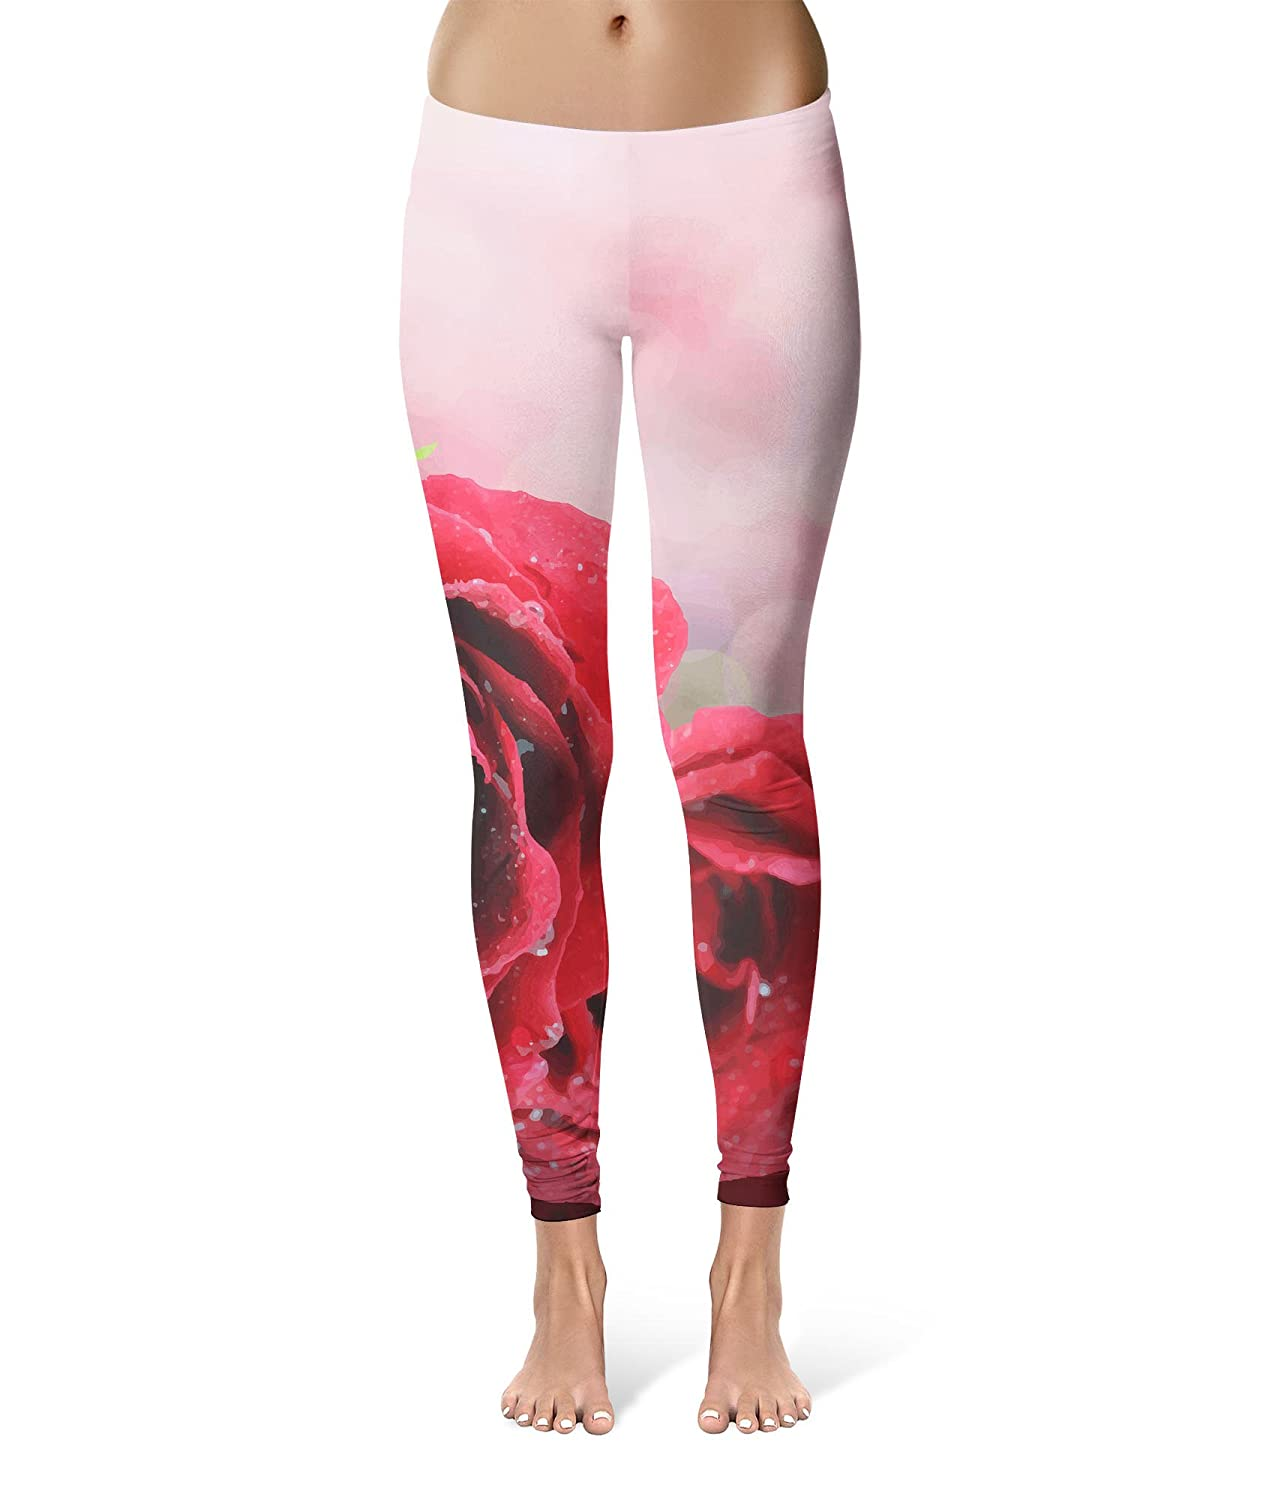 c5e39e089a8d3b Red Roses Bokeh Sport Leggings - Full Length, Mid/High Waist: Amazon.co.uk:  Clothing